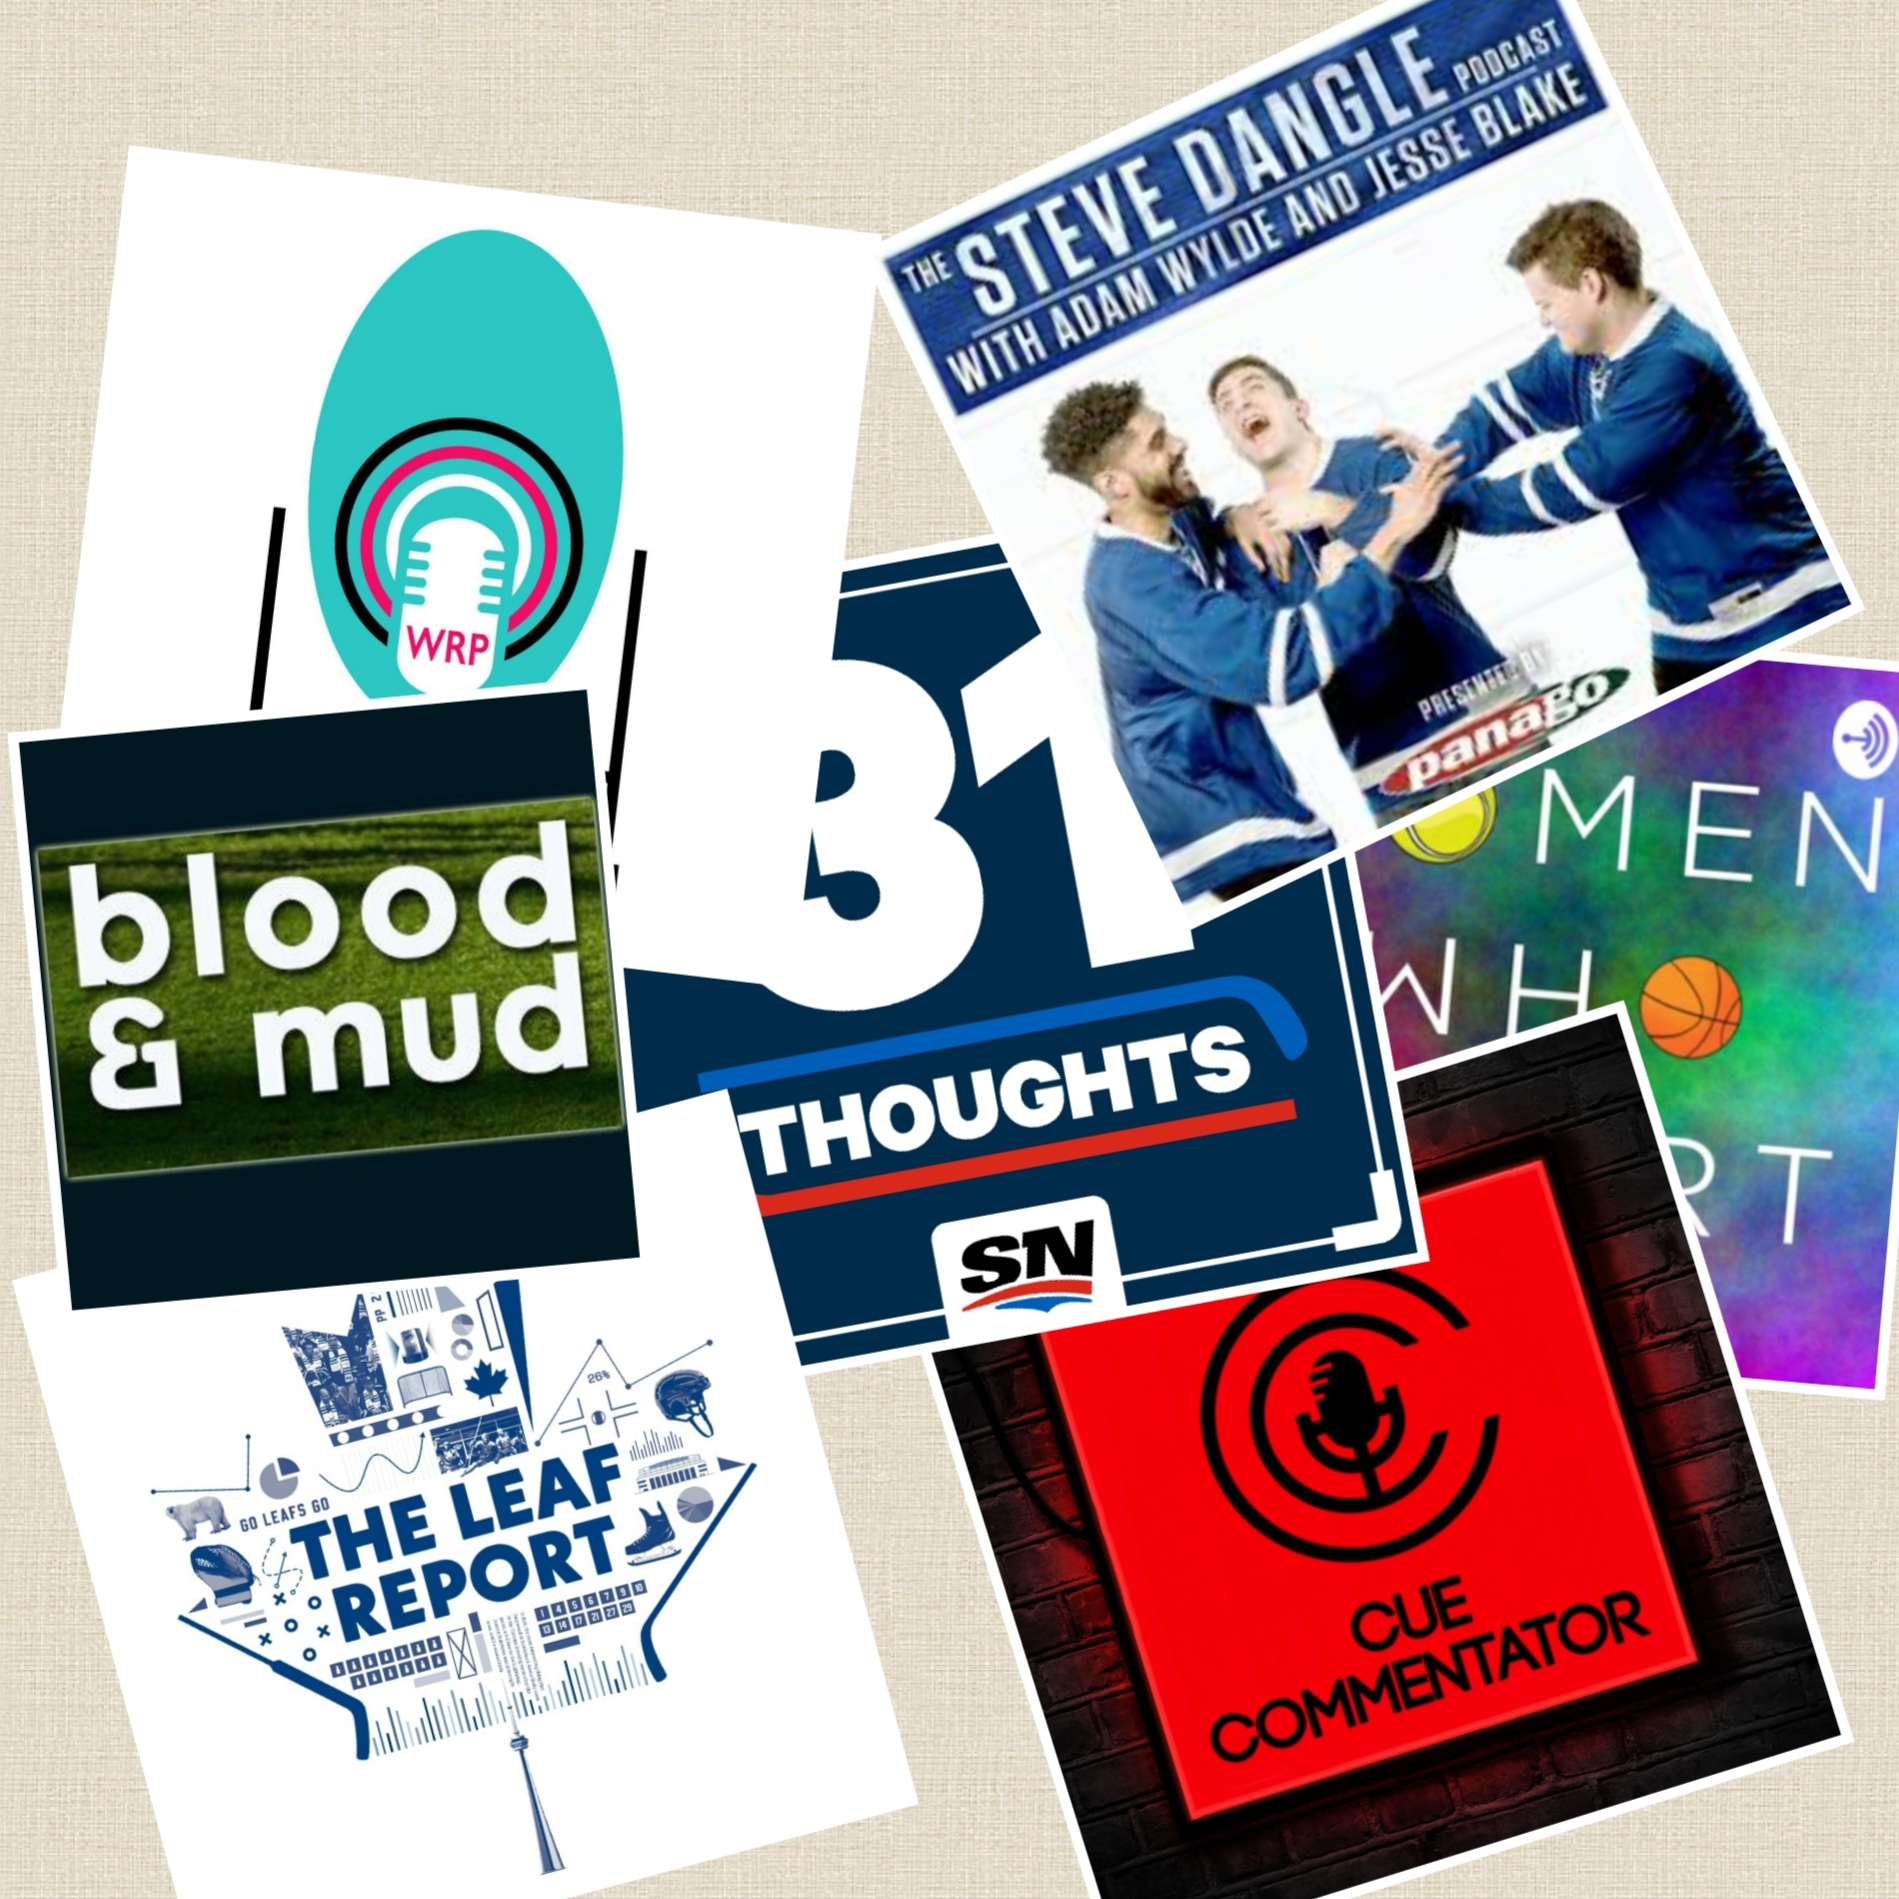 The Podcasts keeping me sane through lockdown!